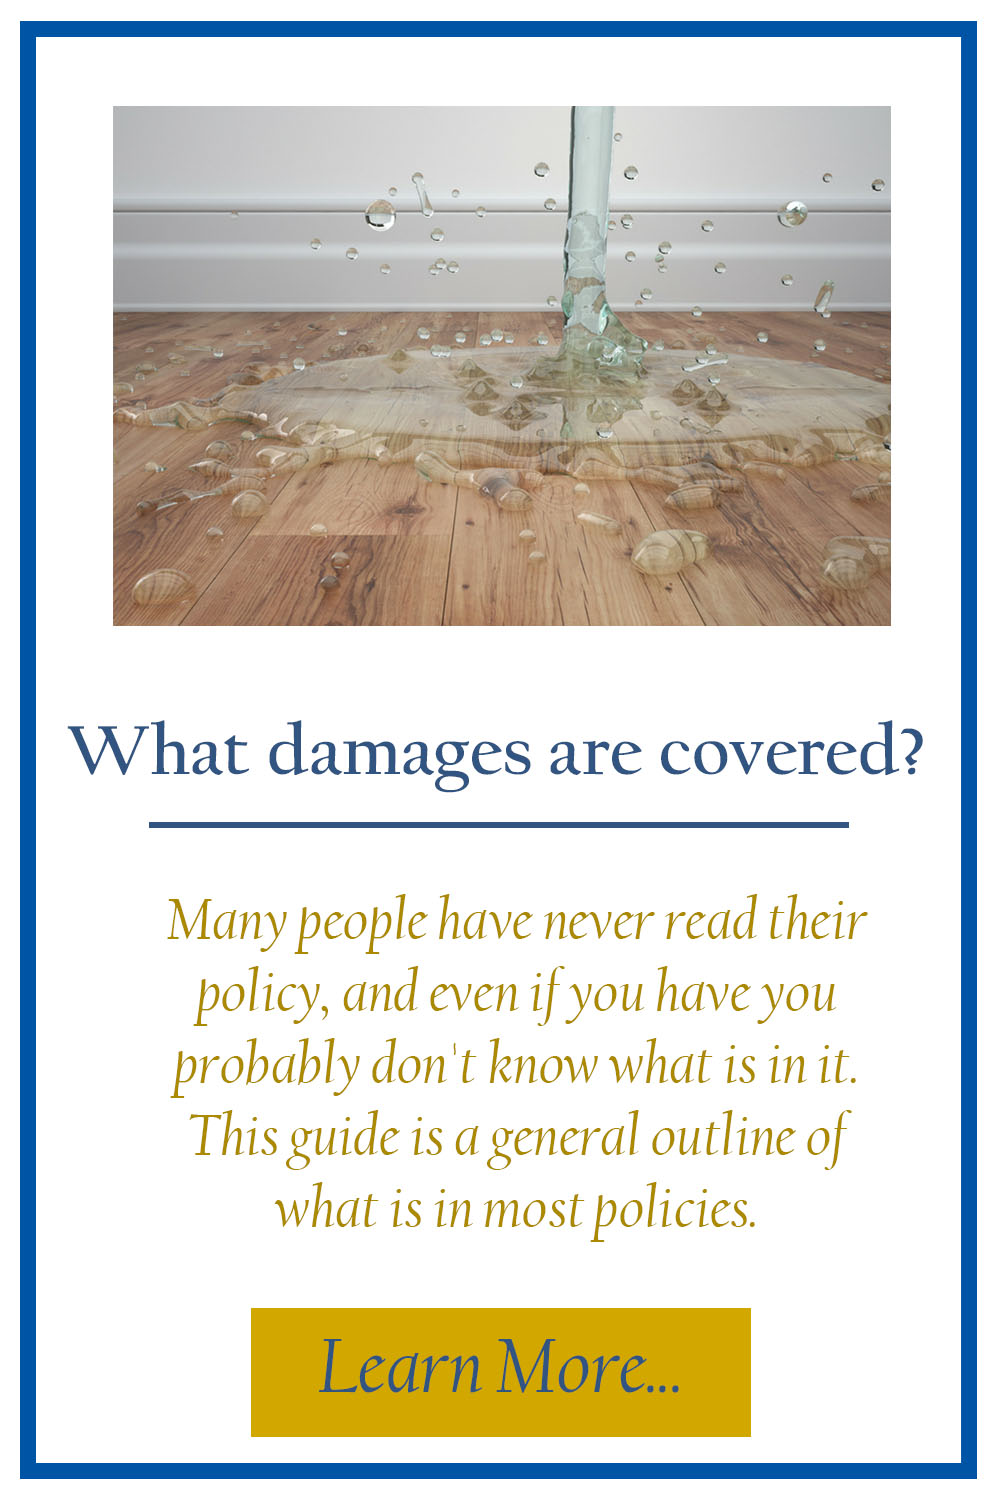 Covered Damages TILE